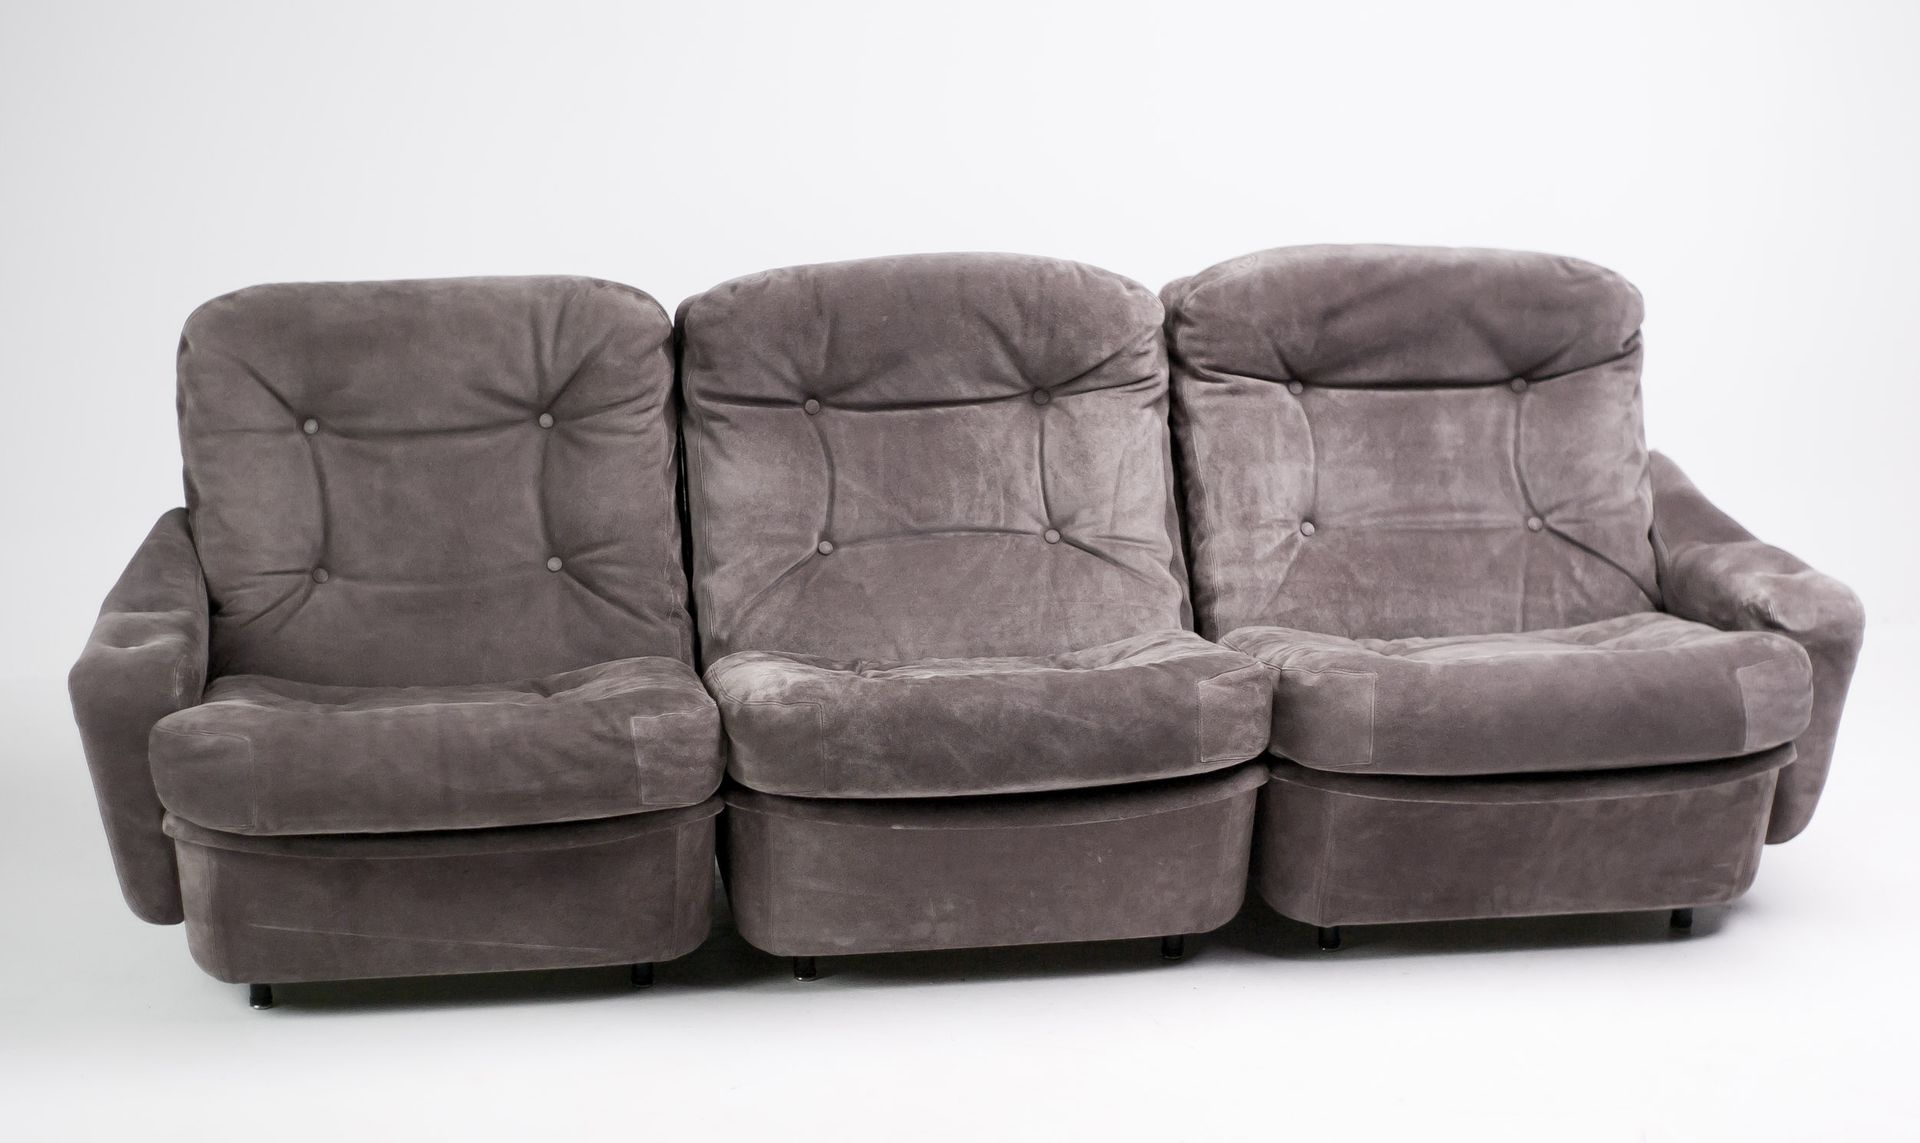 Vintage Three Seater Modular Sofas in Suede from Airborne Set of